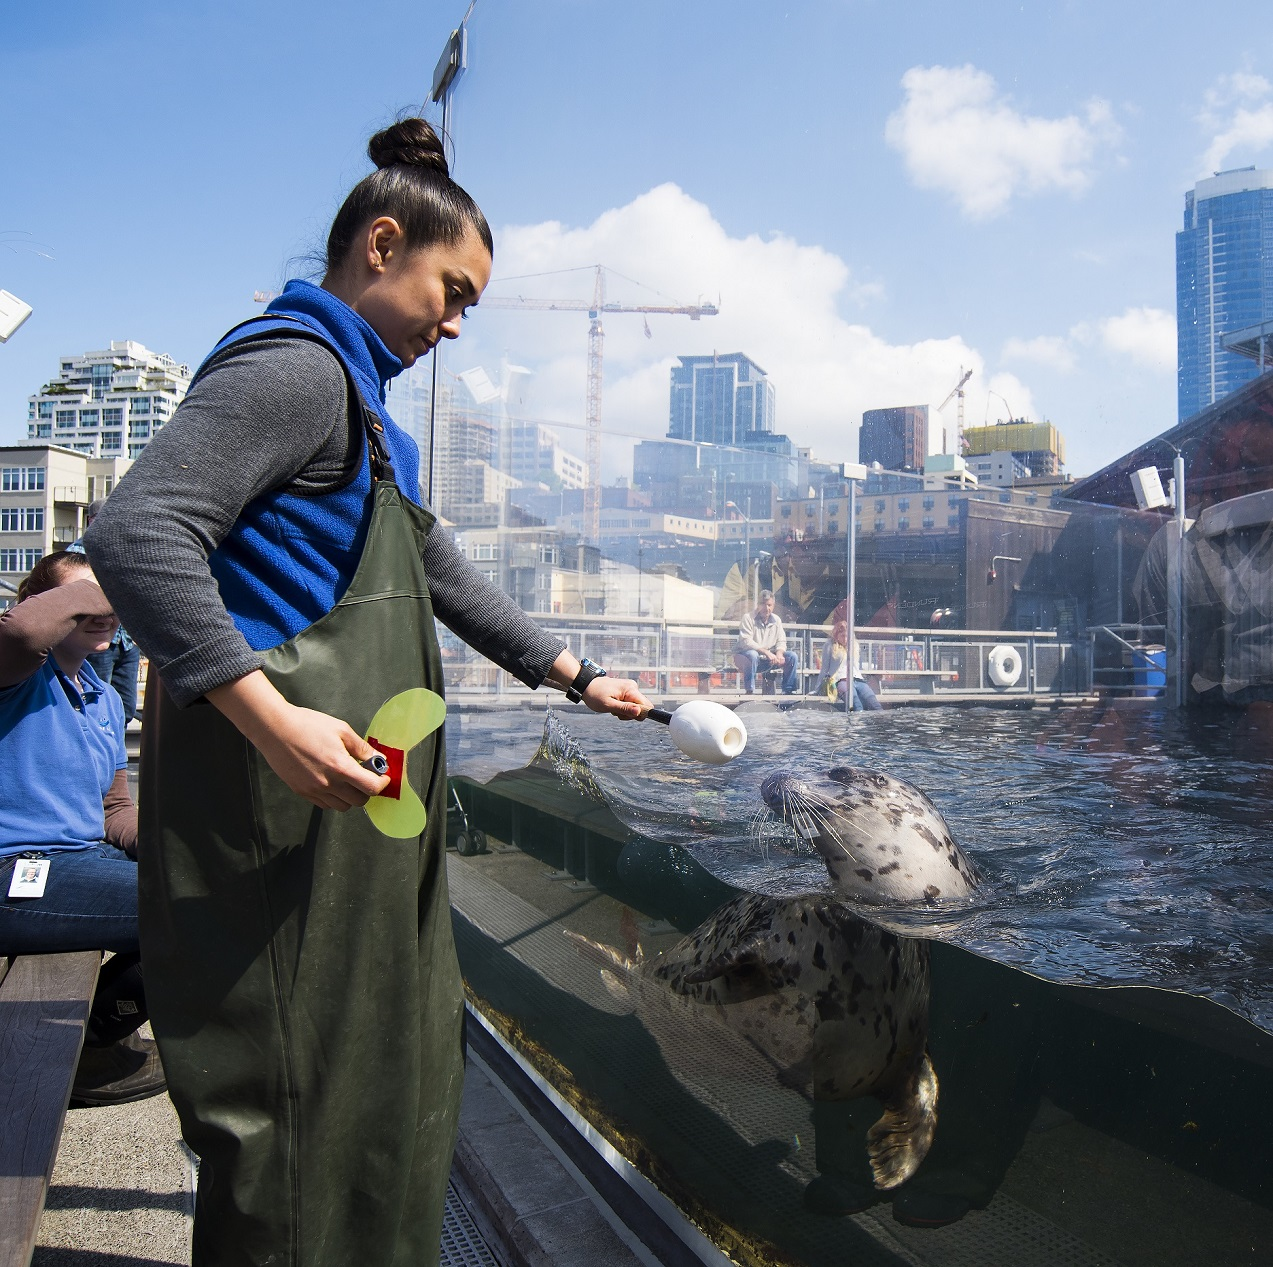 Seattle Aquarium employee performing enrichment activities with harbor seal